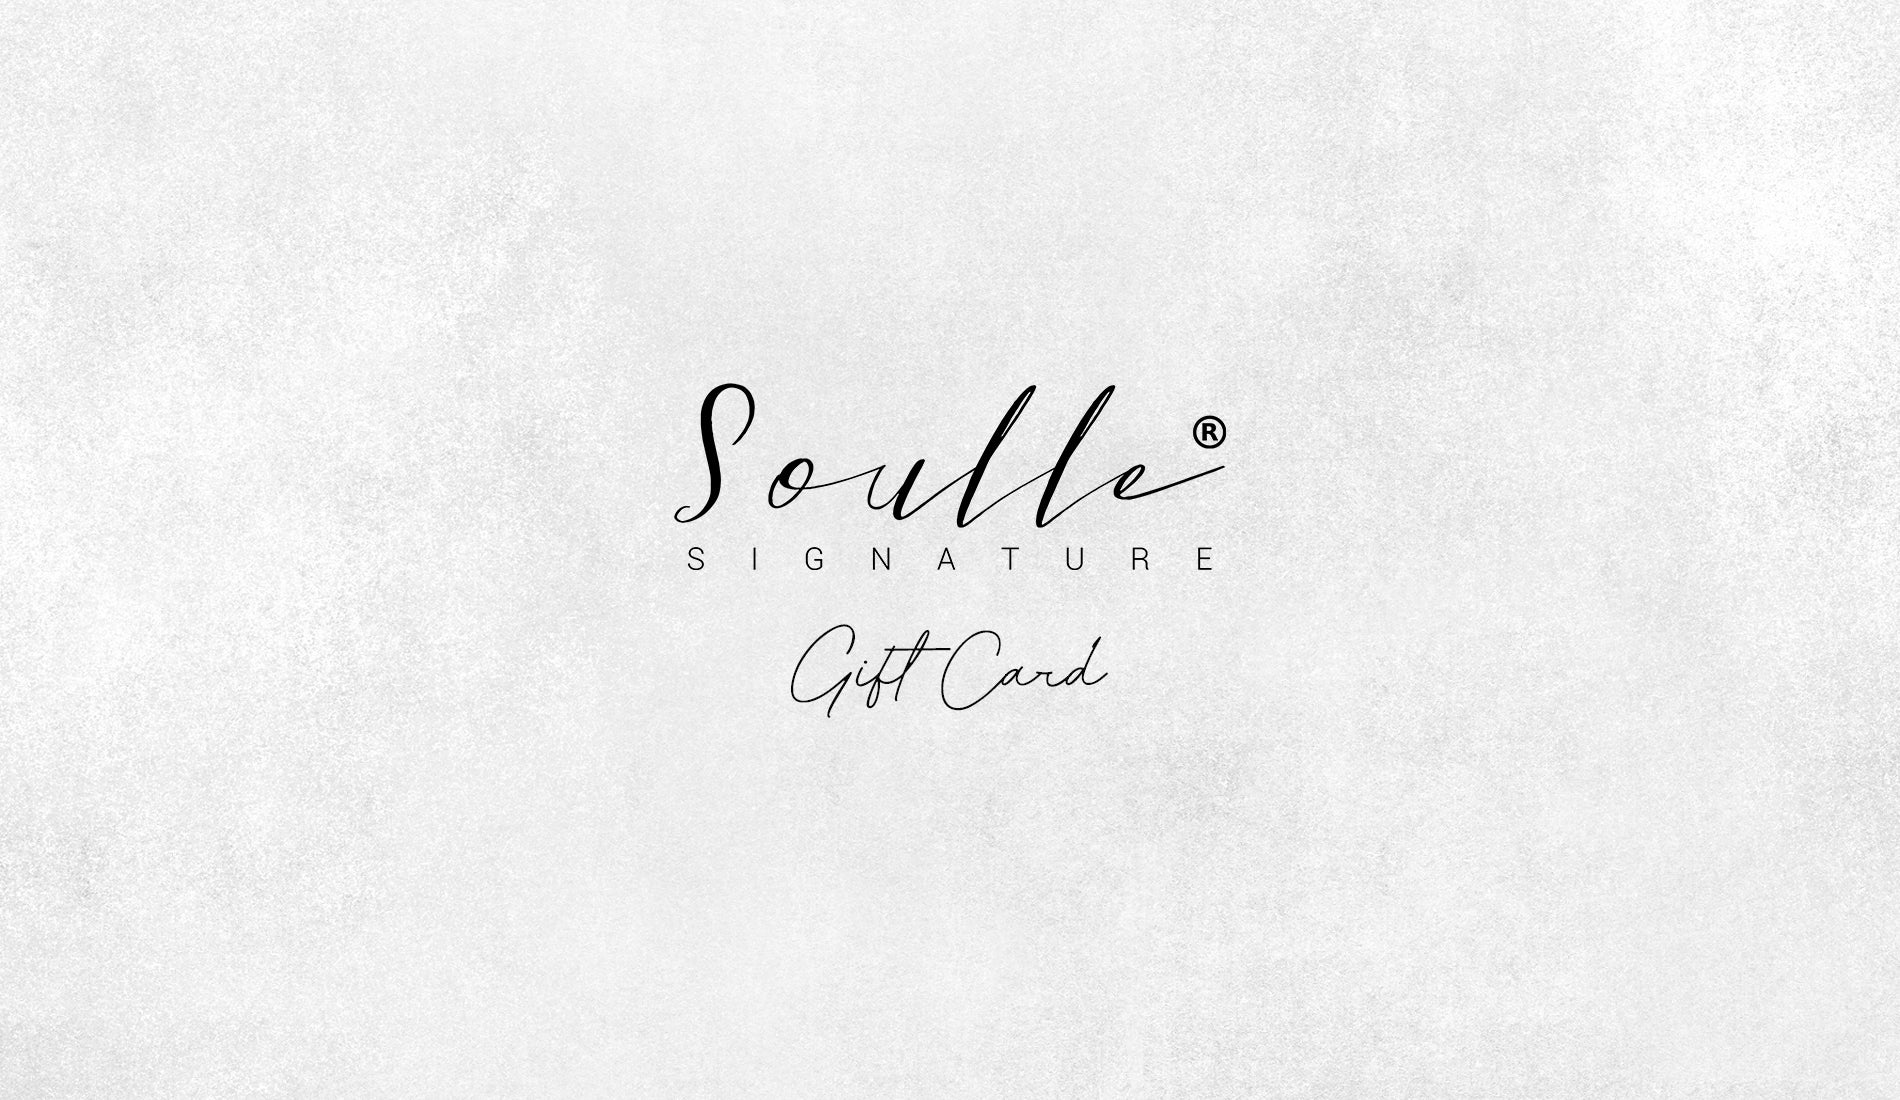 Soulle Signature Gift Cards